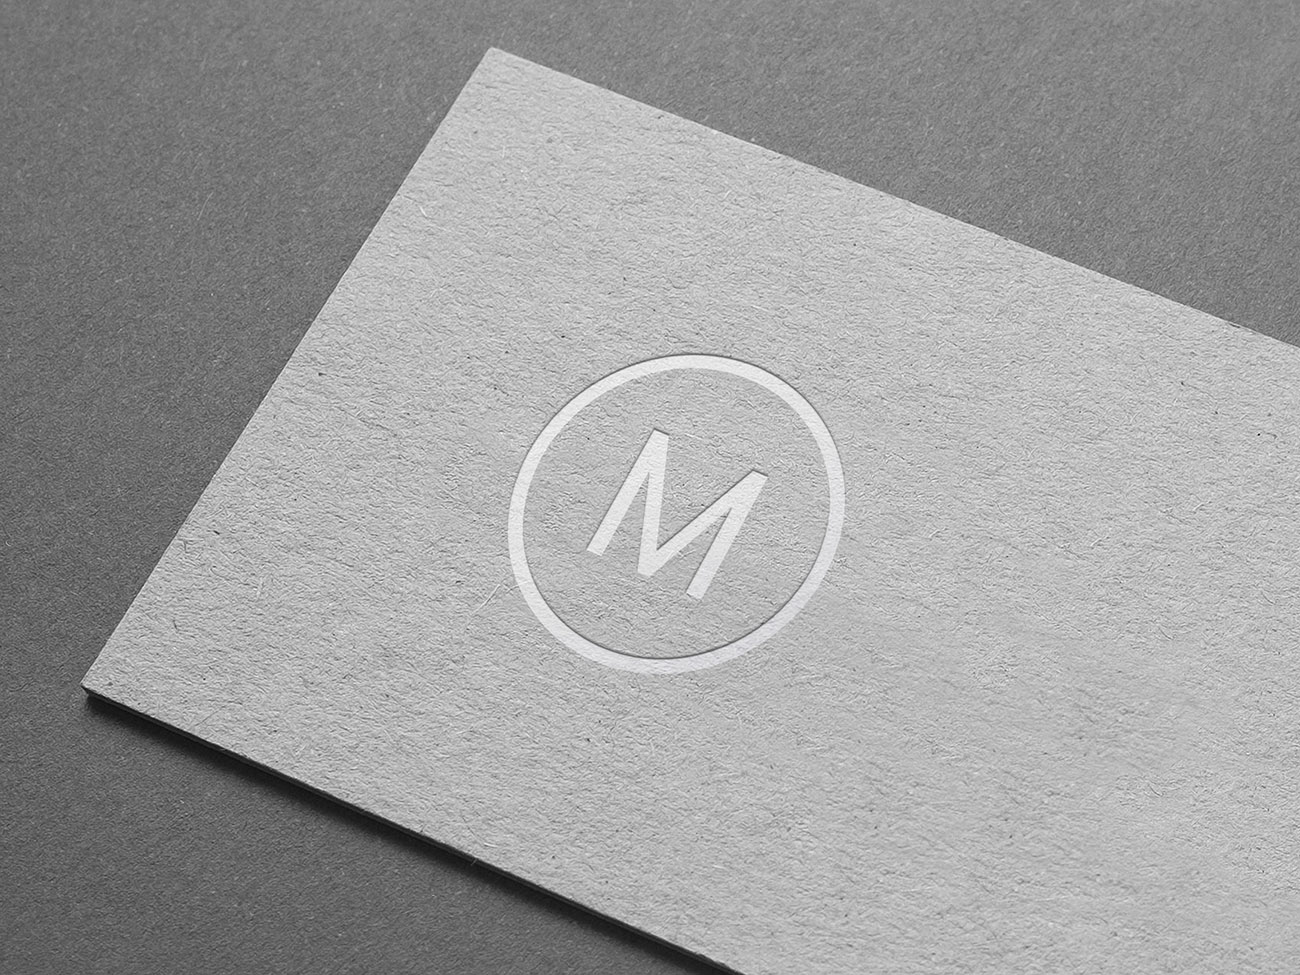 Realistic embossed paper logo mockup for free download. Embossed Paper Logo Mockup Smashmockup